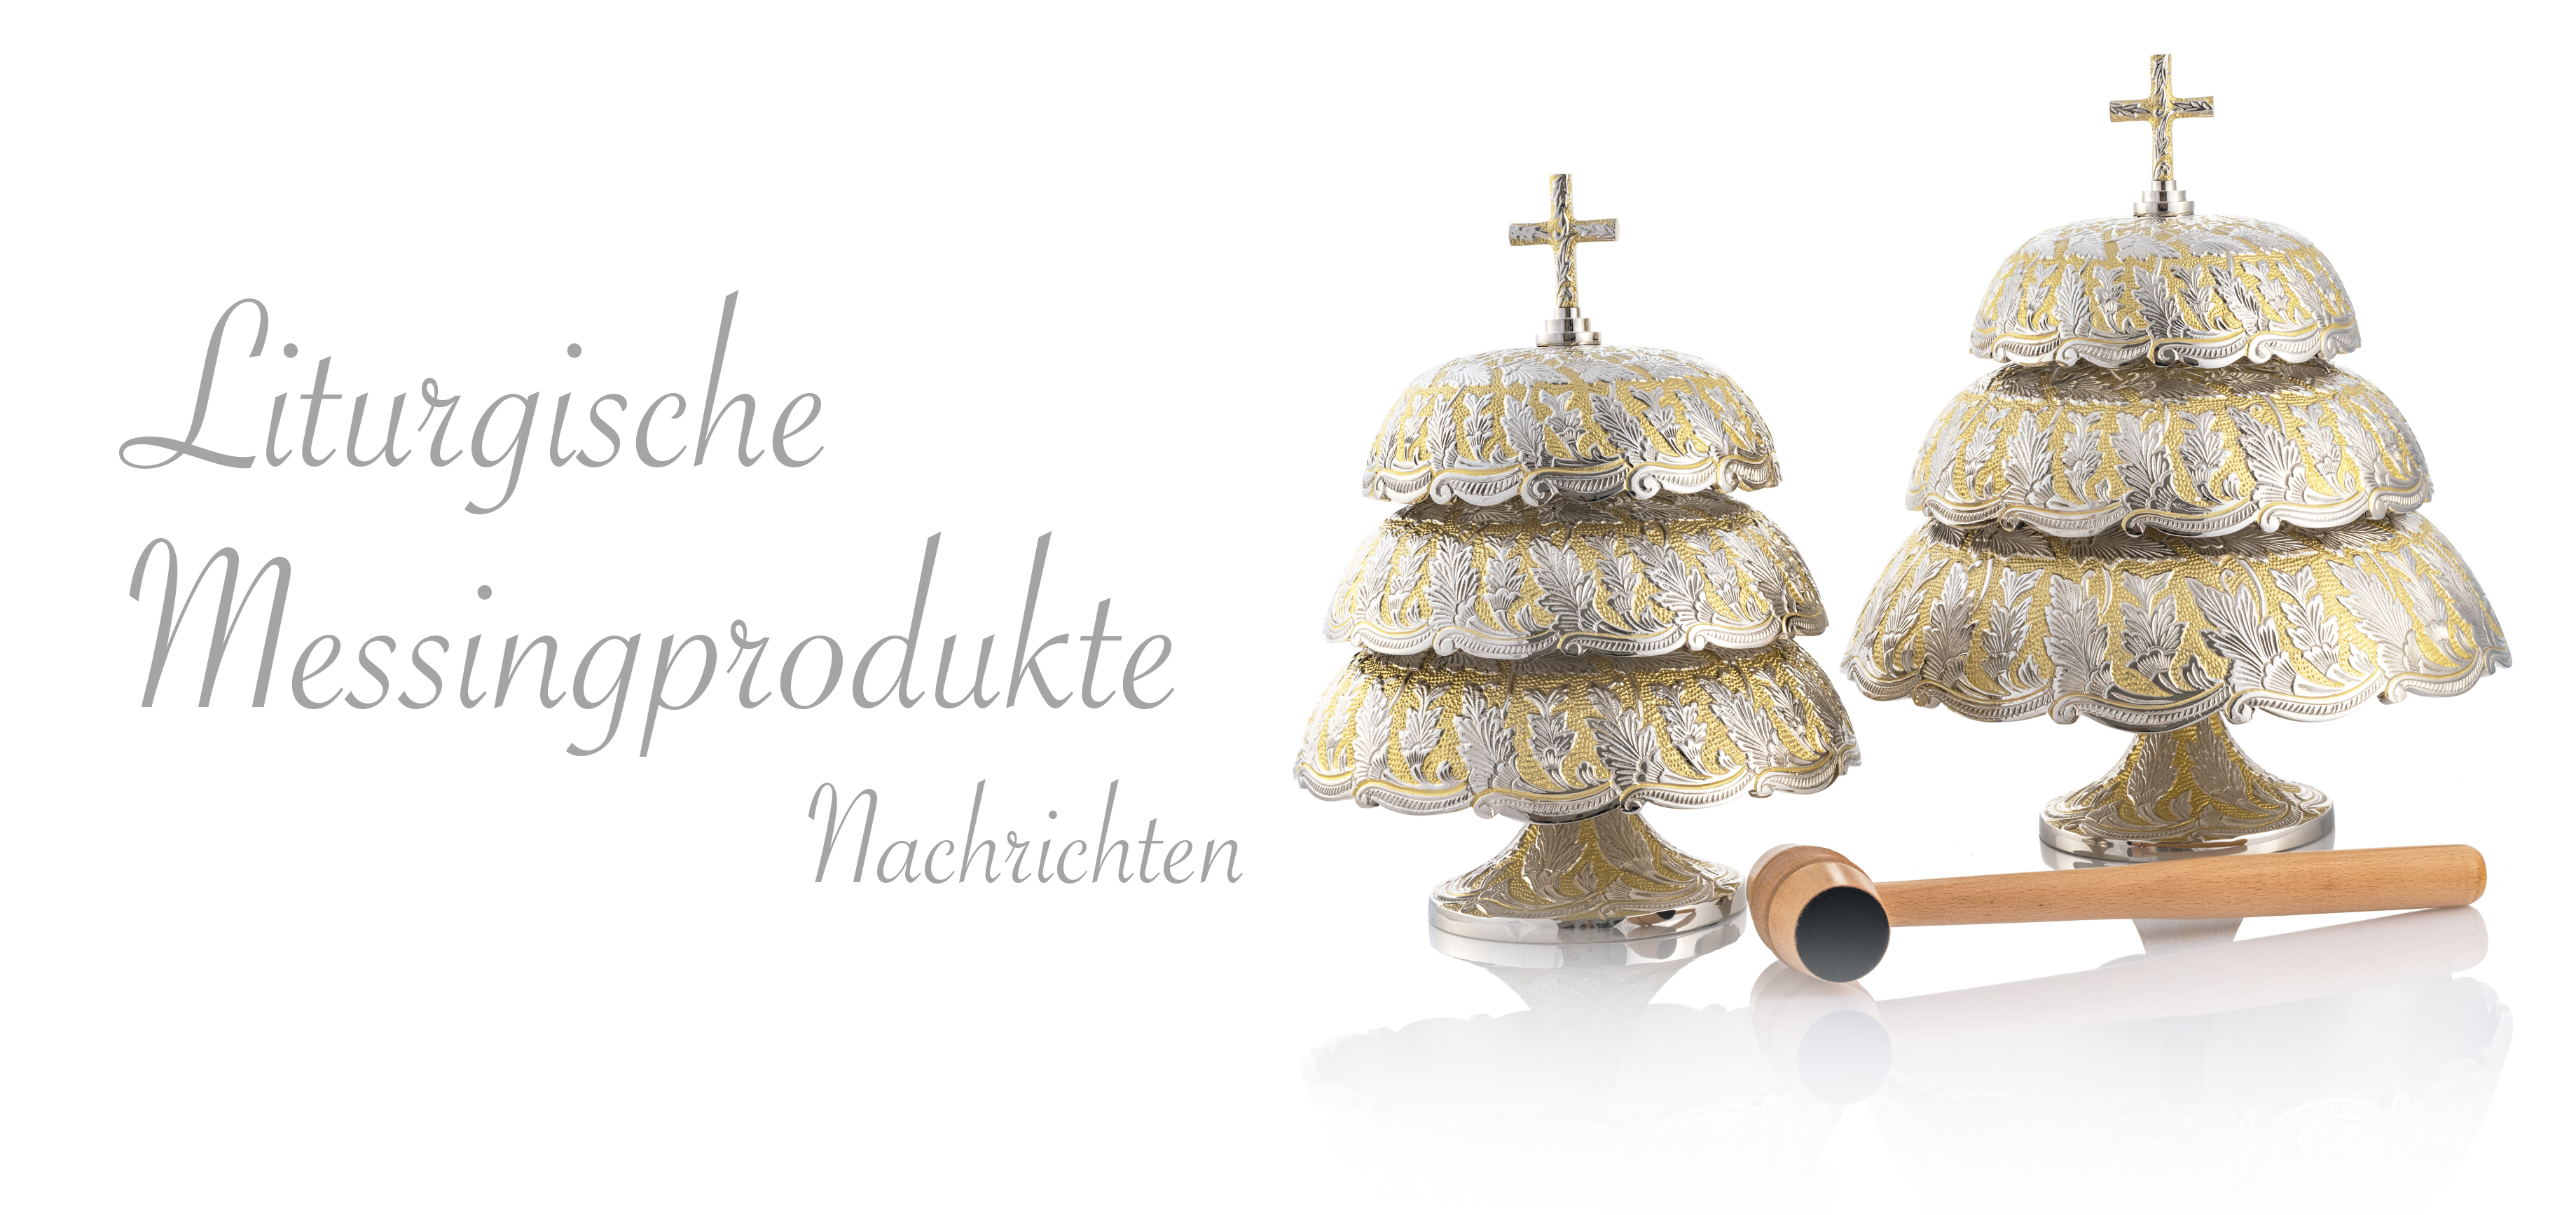 Liturgische Messingprodukte